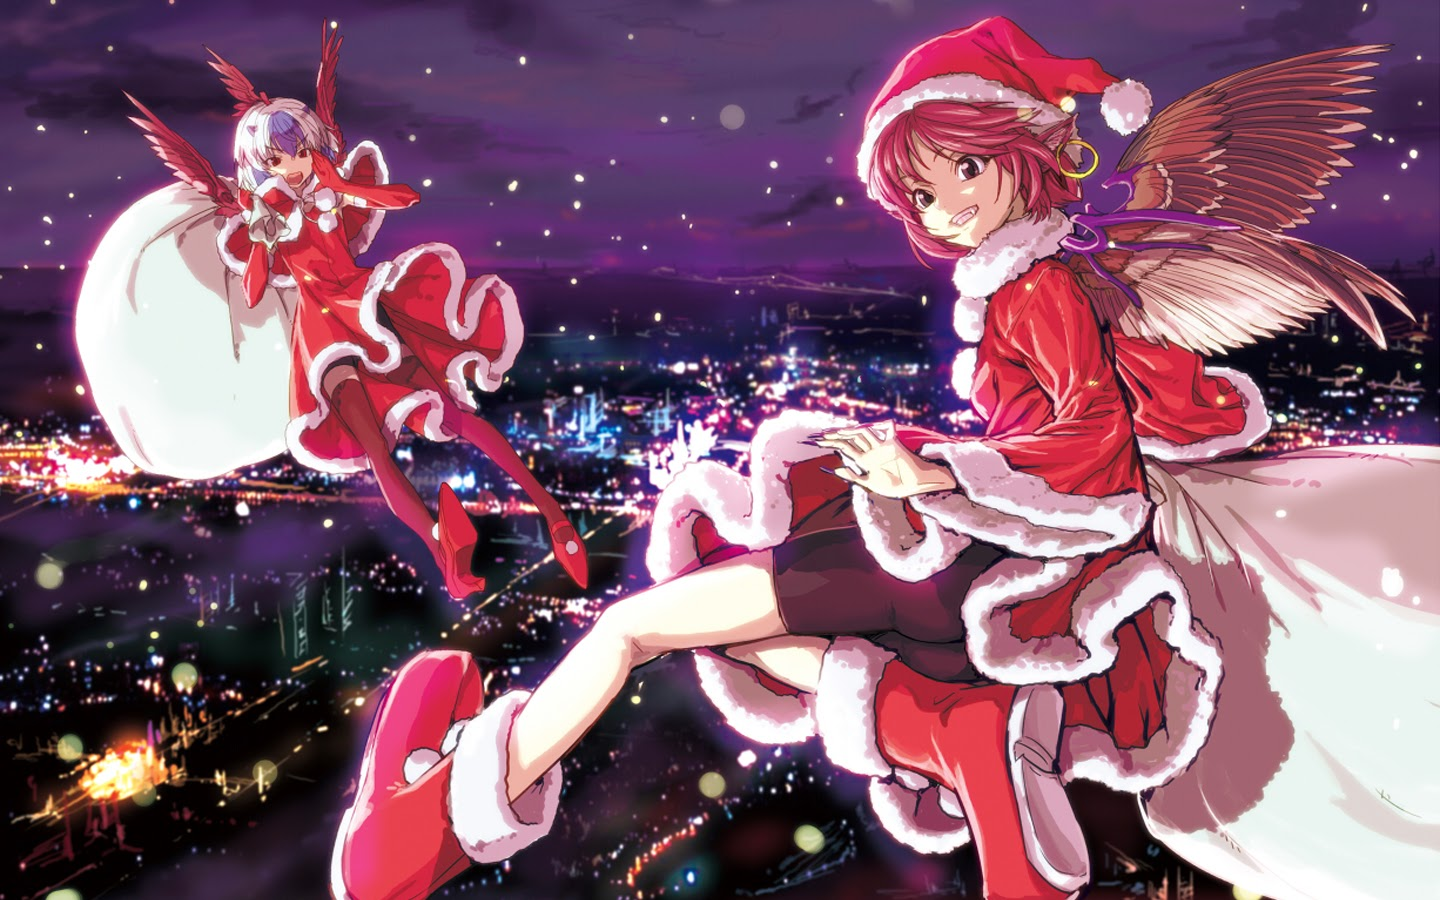 Free Download Anime Christmas Girls 18 Background